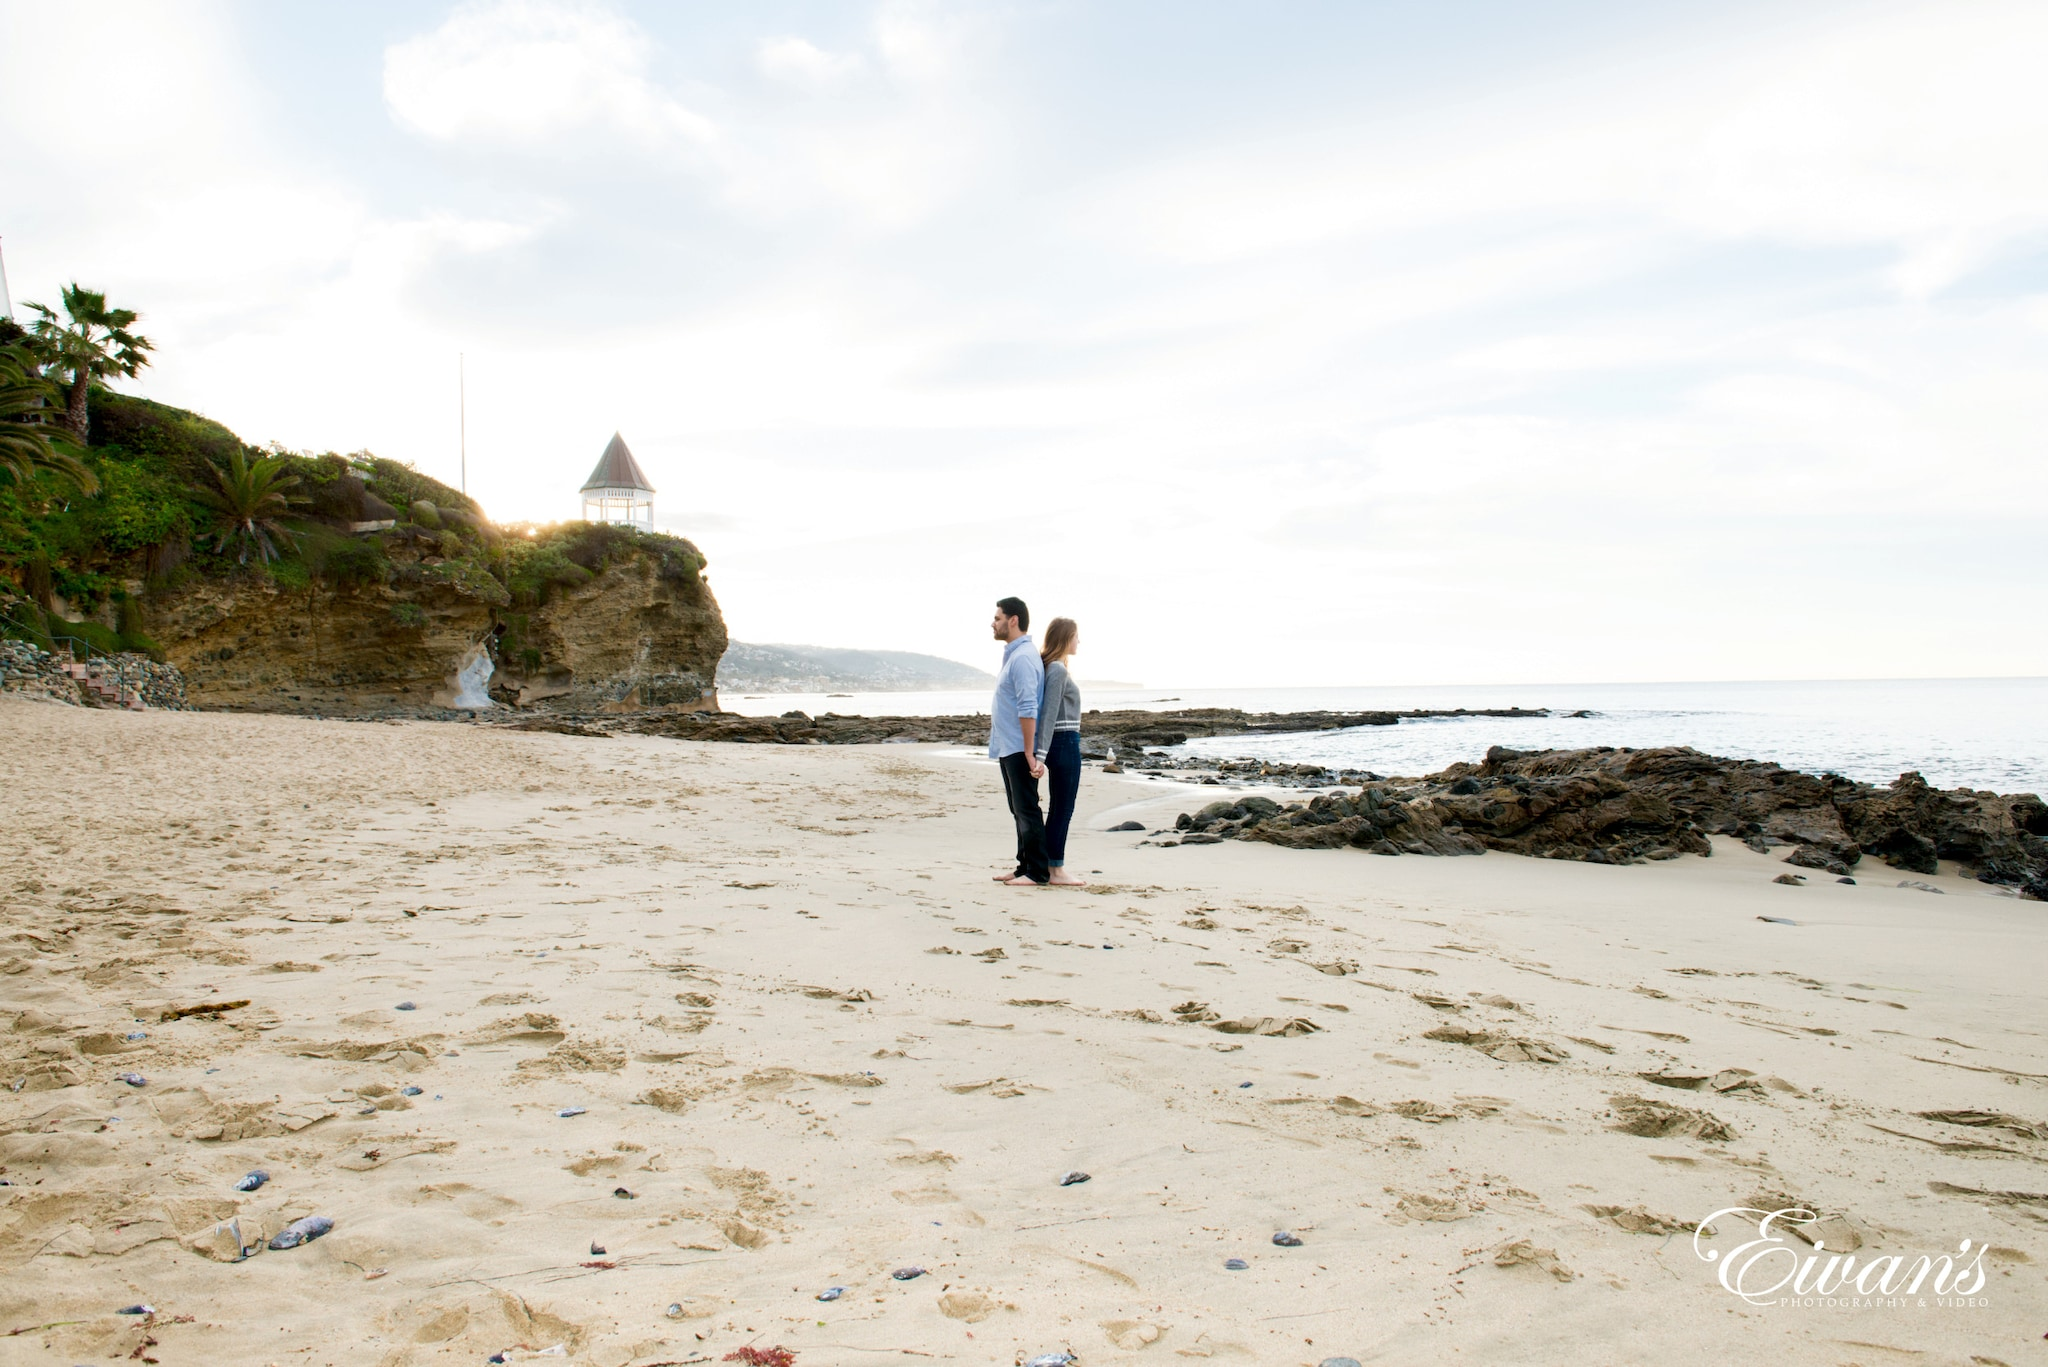 man in white long sleeve shirt and black pants walking on beach during daytime